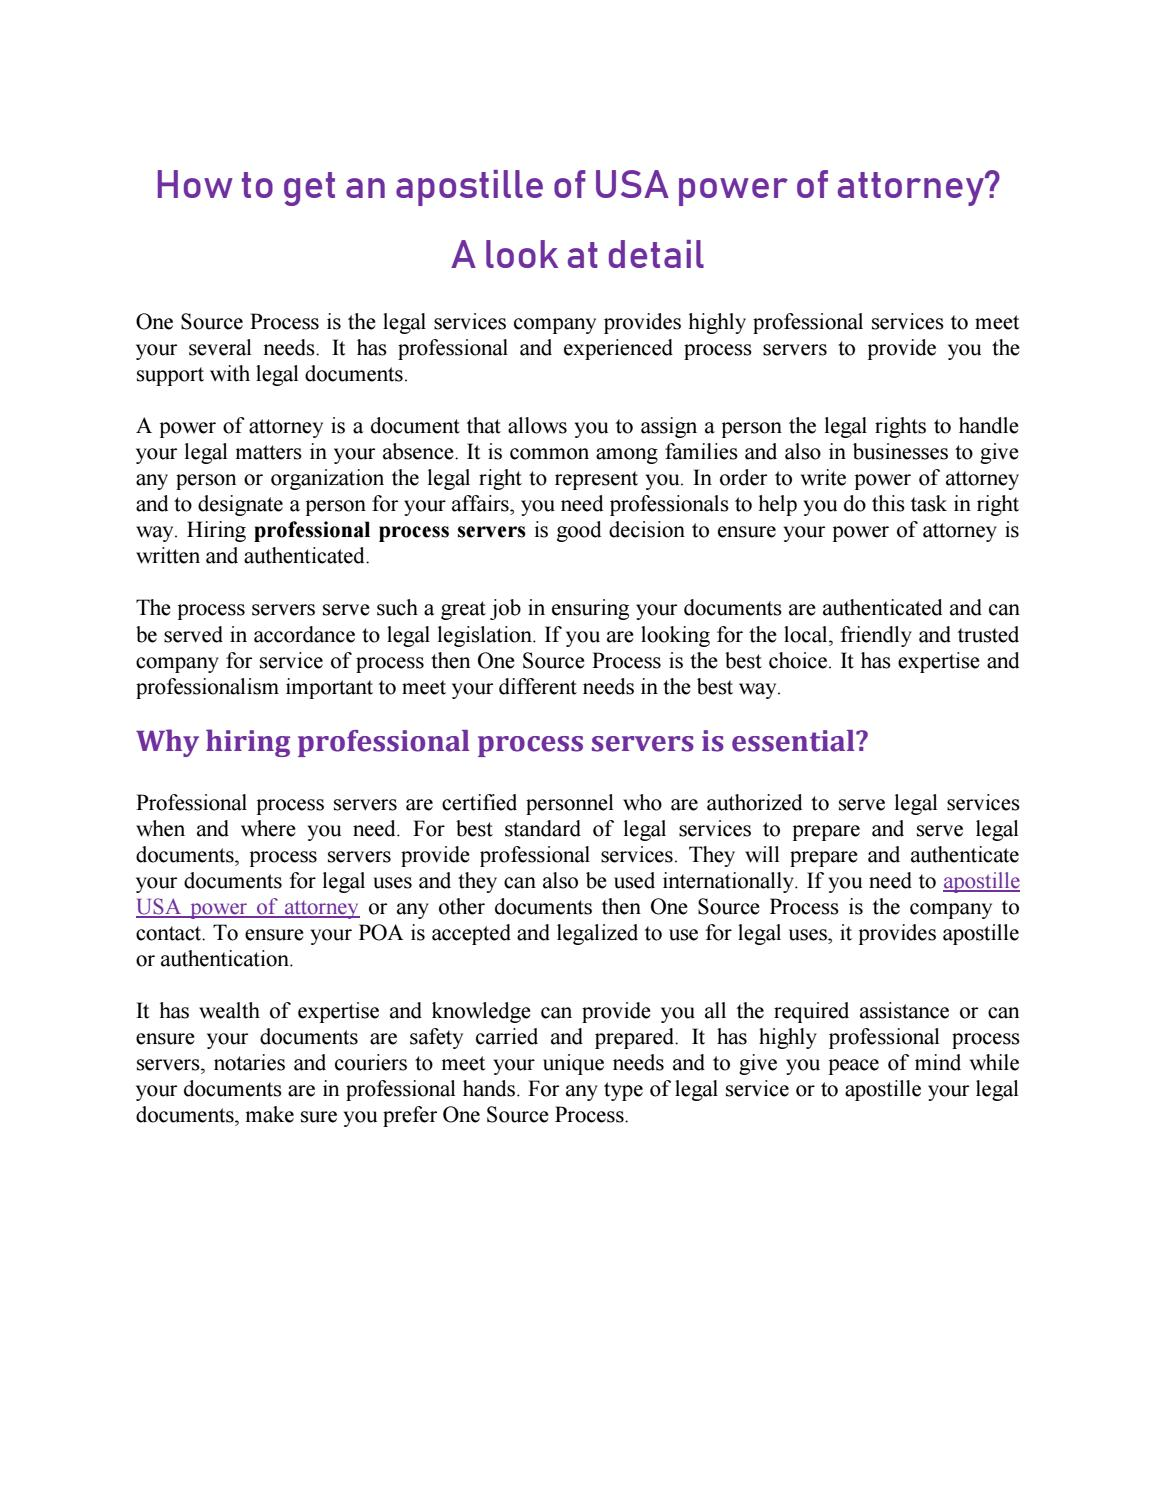 How To Get An Apostille Of USA Power Of Attorney A Look At Detail - Legal type documents